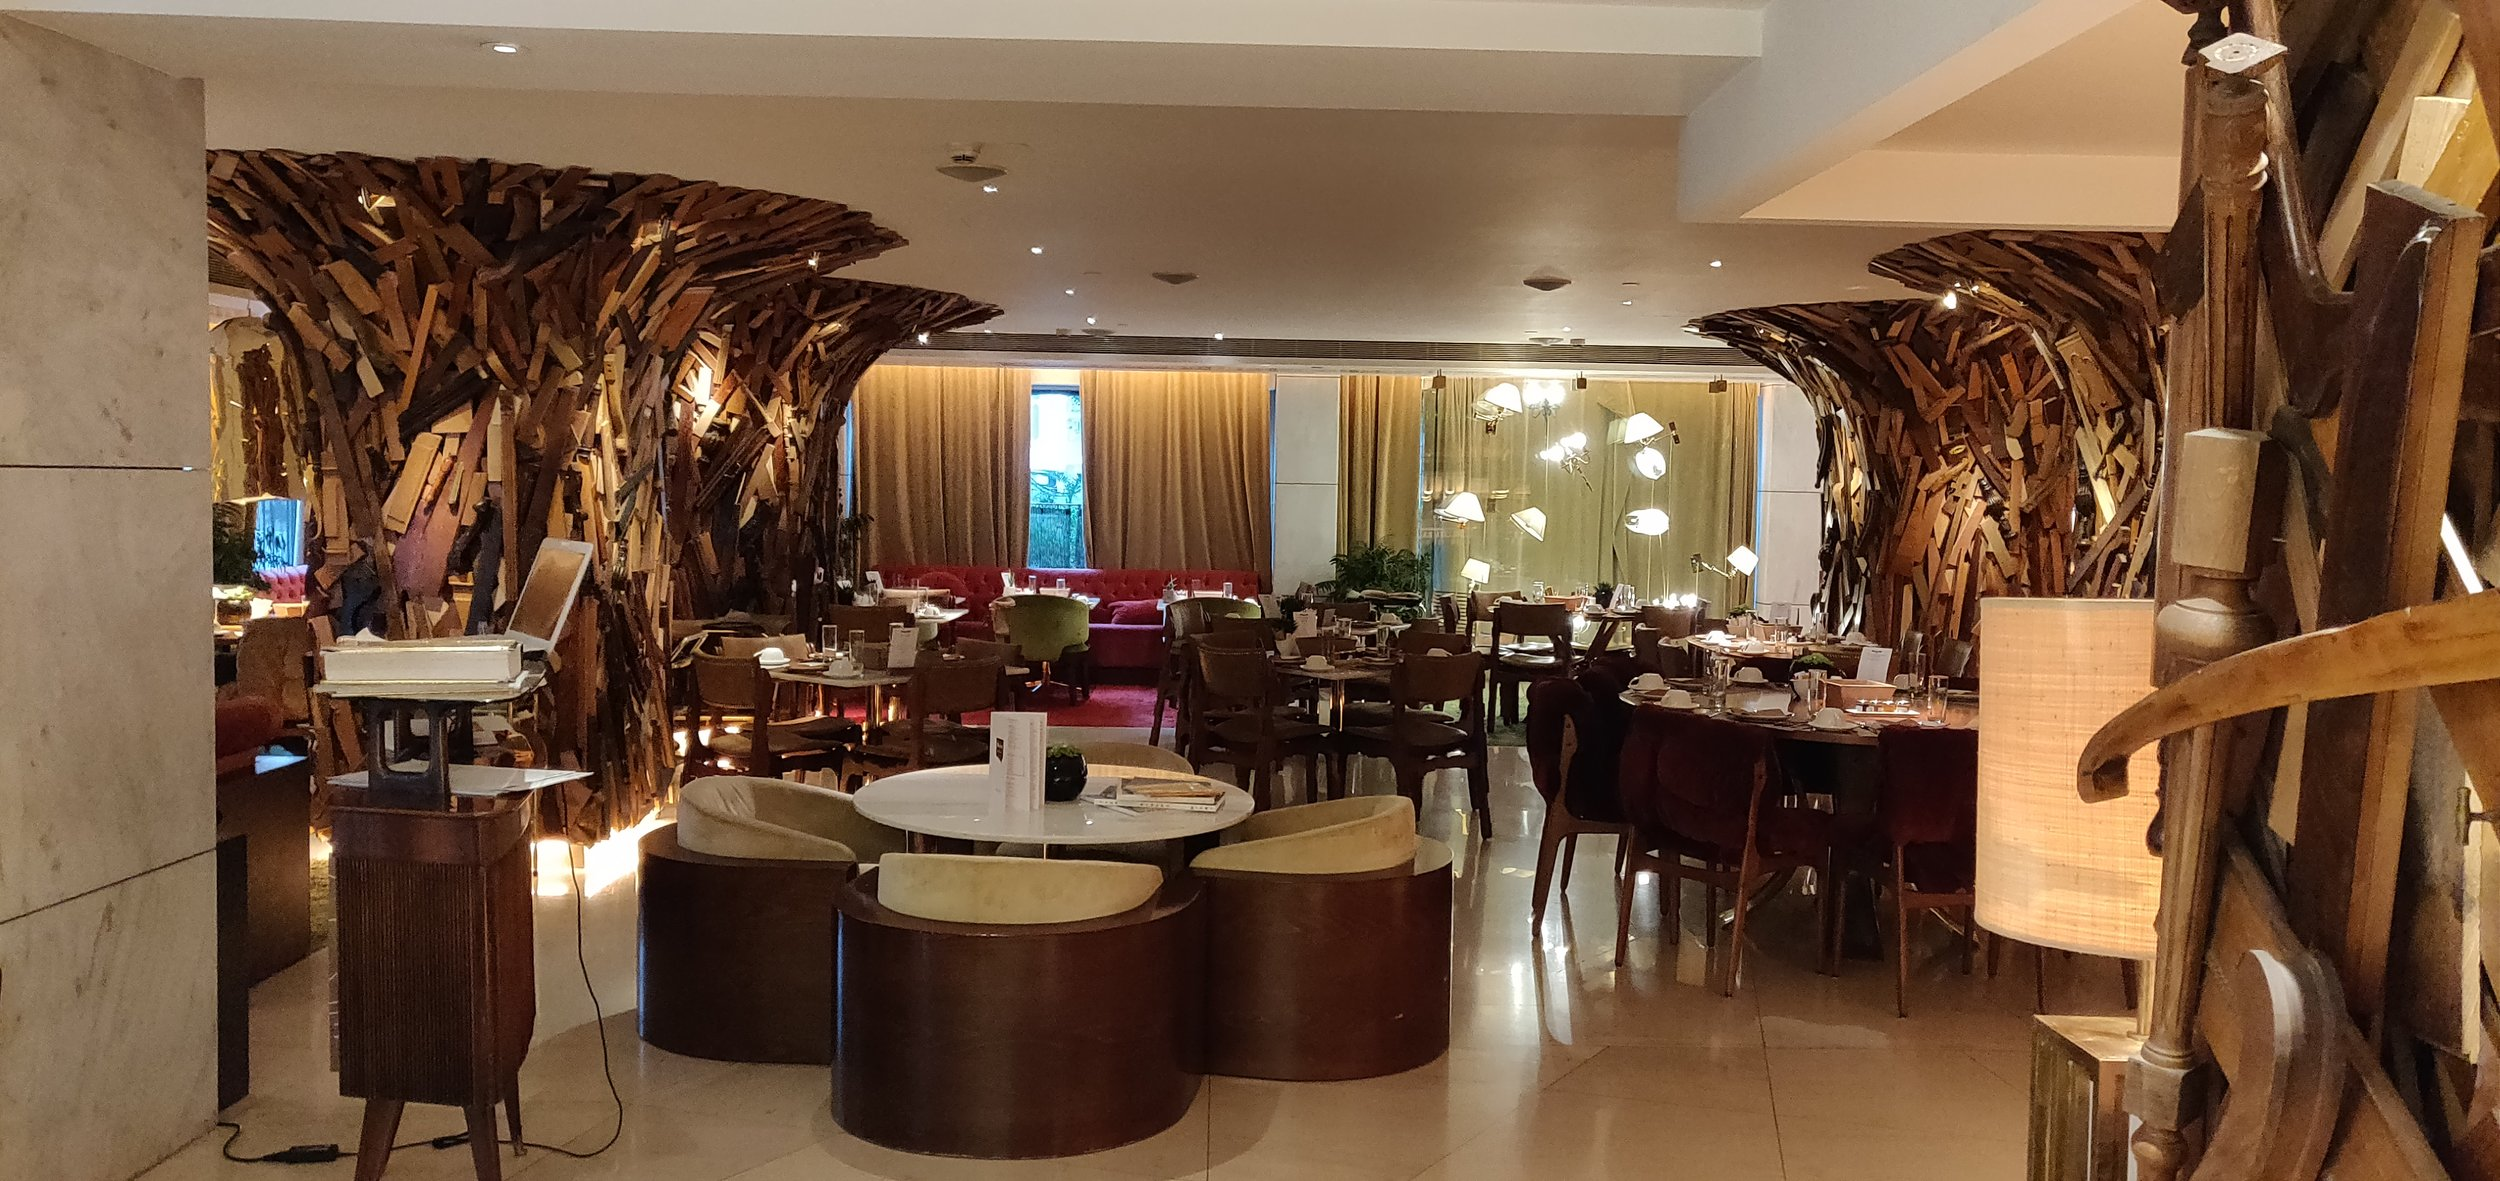 NEW Hotel, Athens - Restaurant